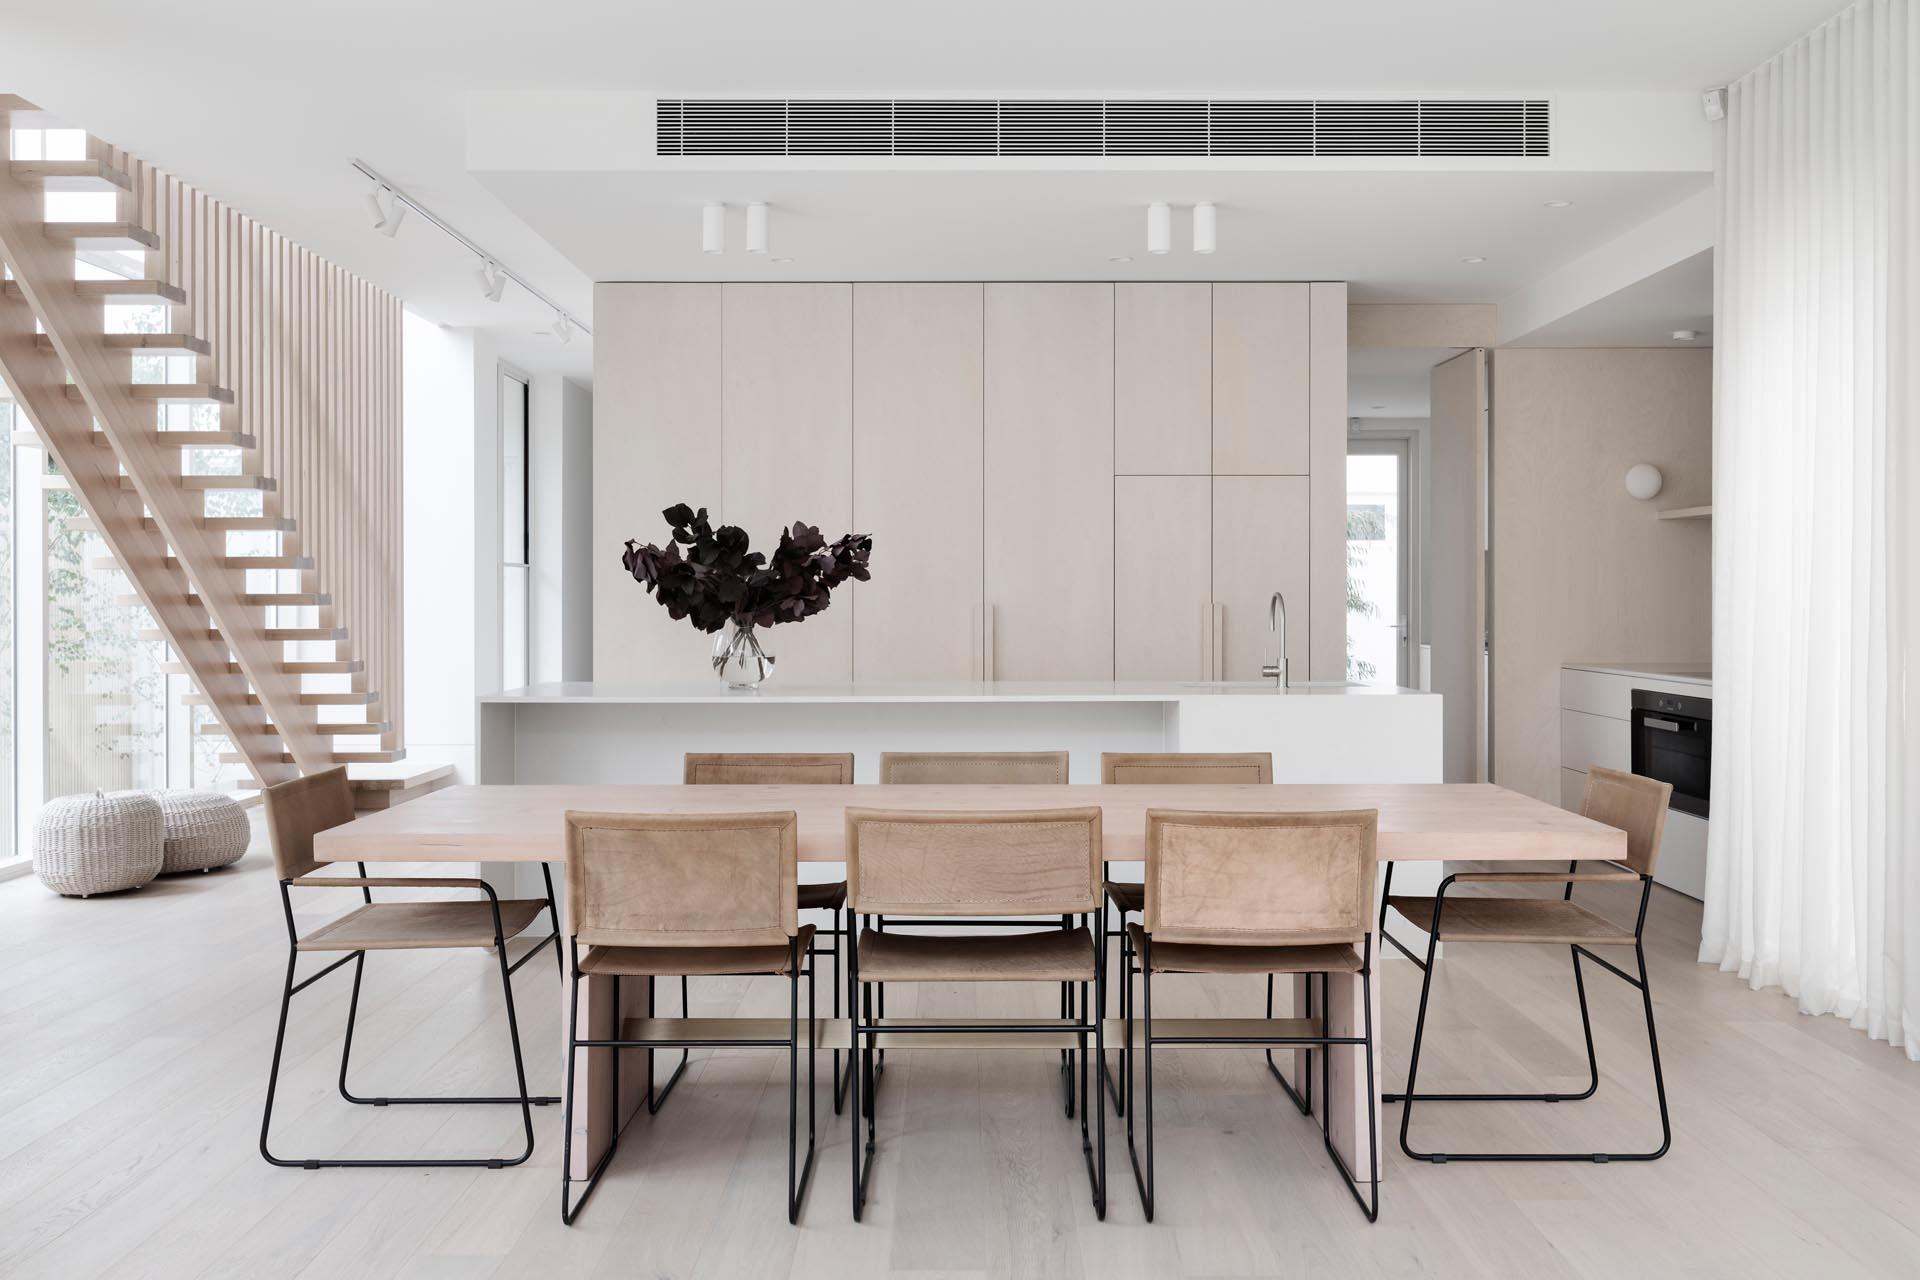 This modern house features a dining room with a light wood table, and a kitchen with minimalist cabinets and a white island.